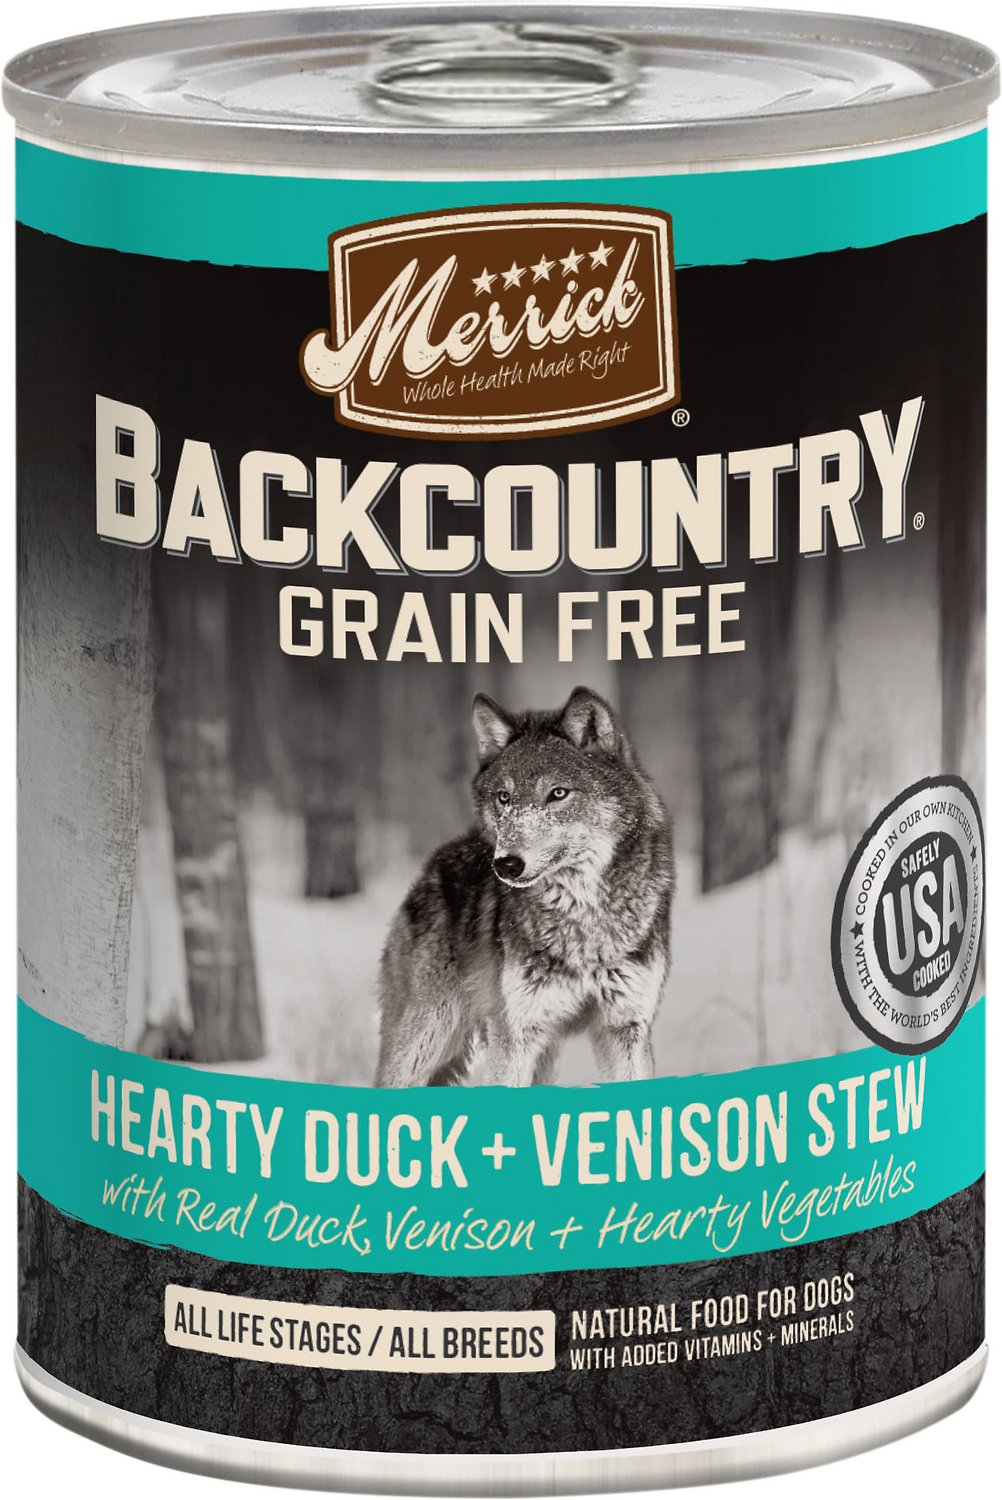 Merrick Backcountry Duck & Venison Stew Canned Dog Food (12.7oz)